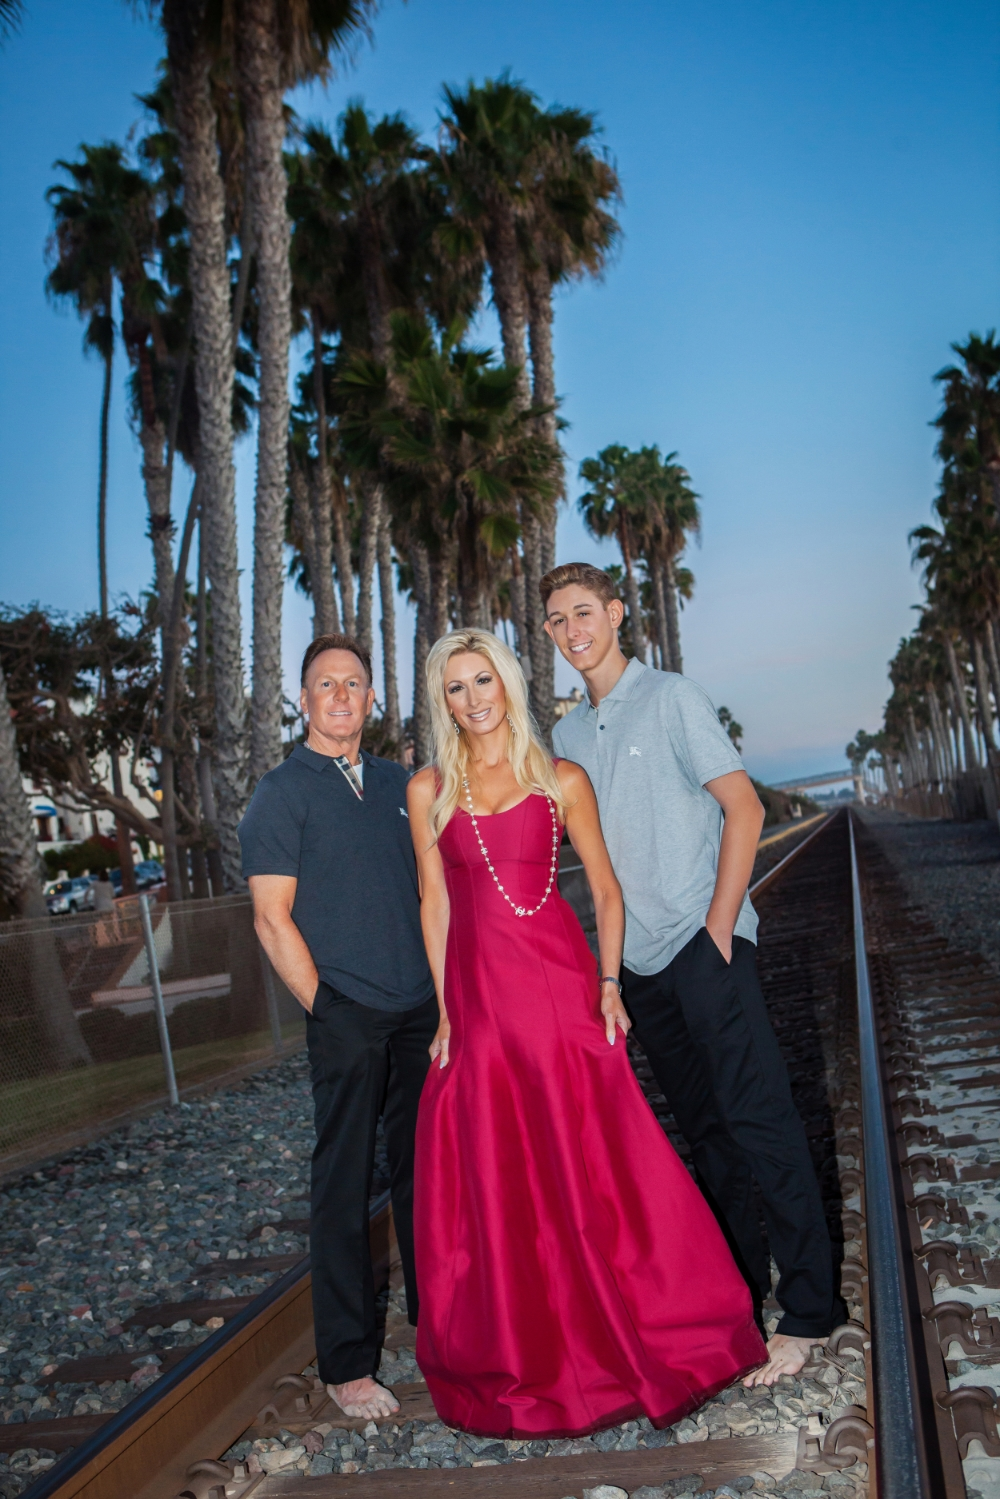 San Clememte, California Family Portrait Photography